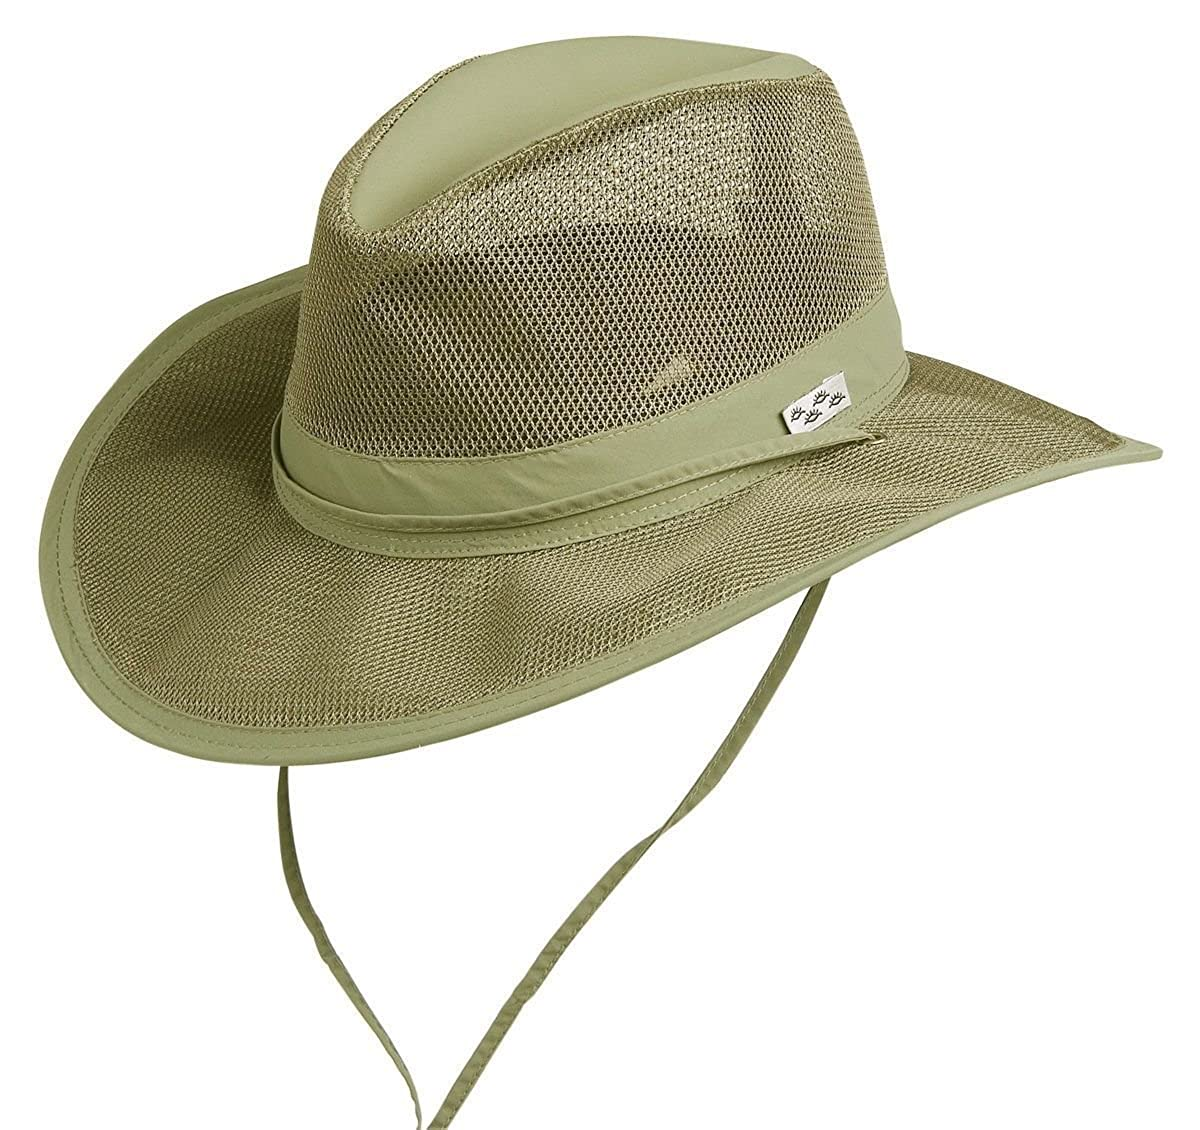 5567528e Made from light weight Supplex and features a mesh crown to keep you cool  on those hot summer days. This hat really feels as light as a feather, ...